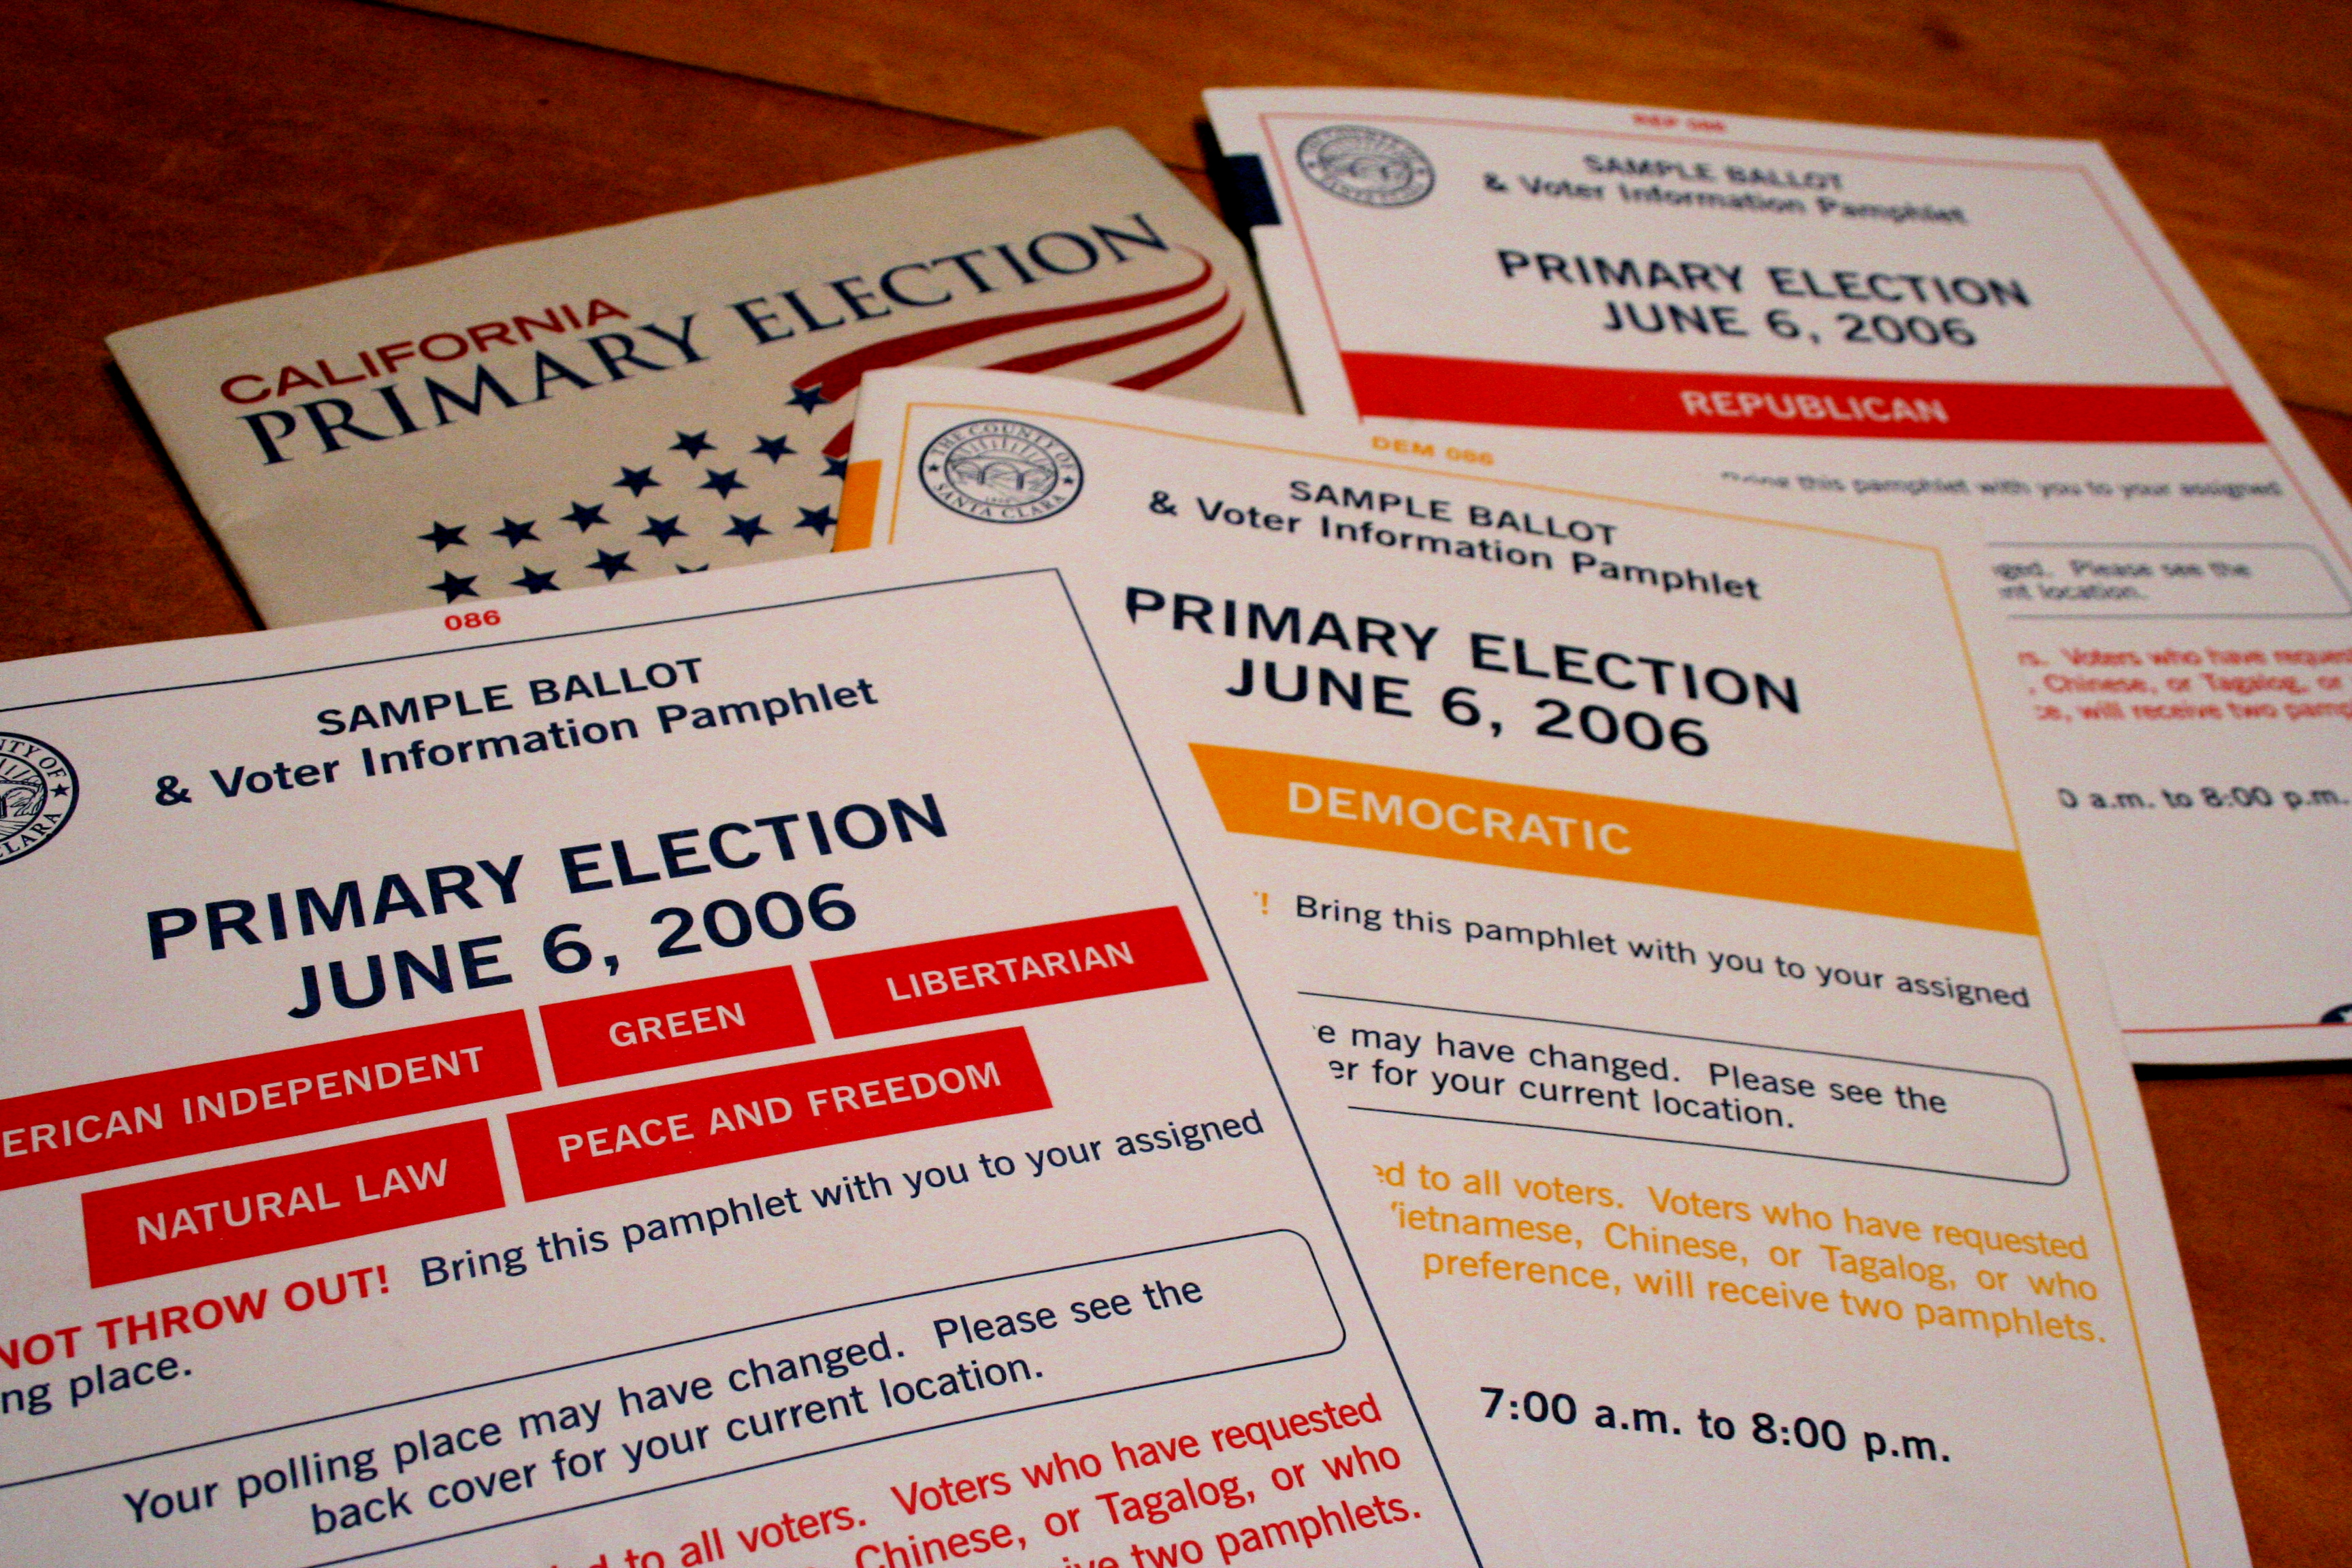 California_Primary_Election_Voter_Information_Pamphlets.jpg